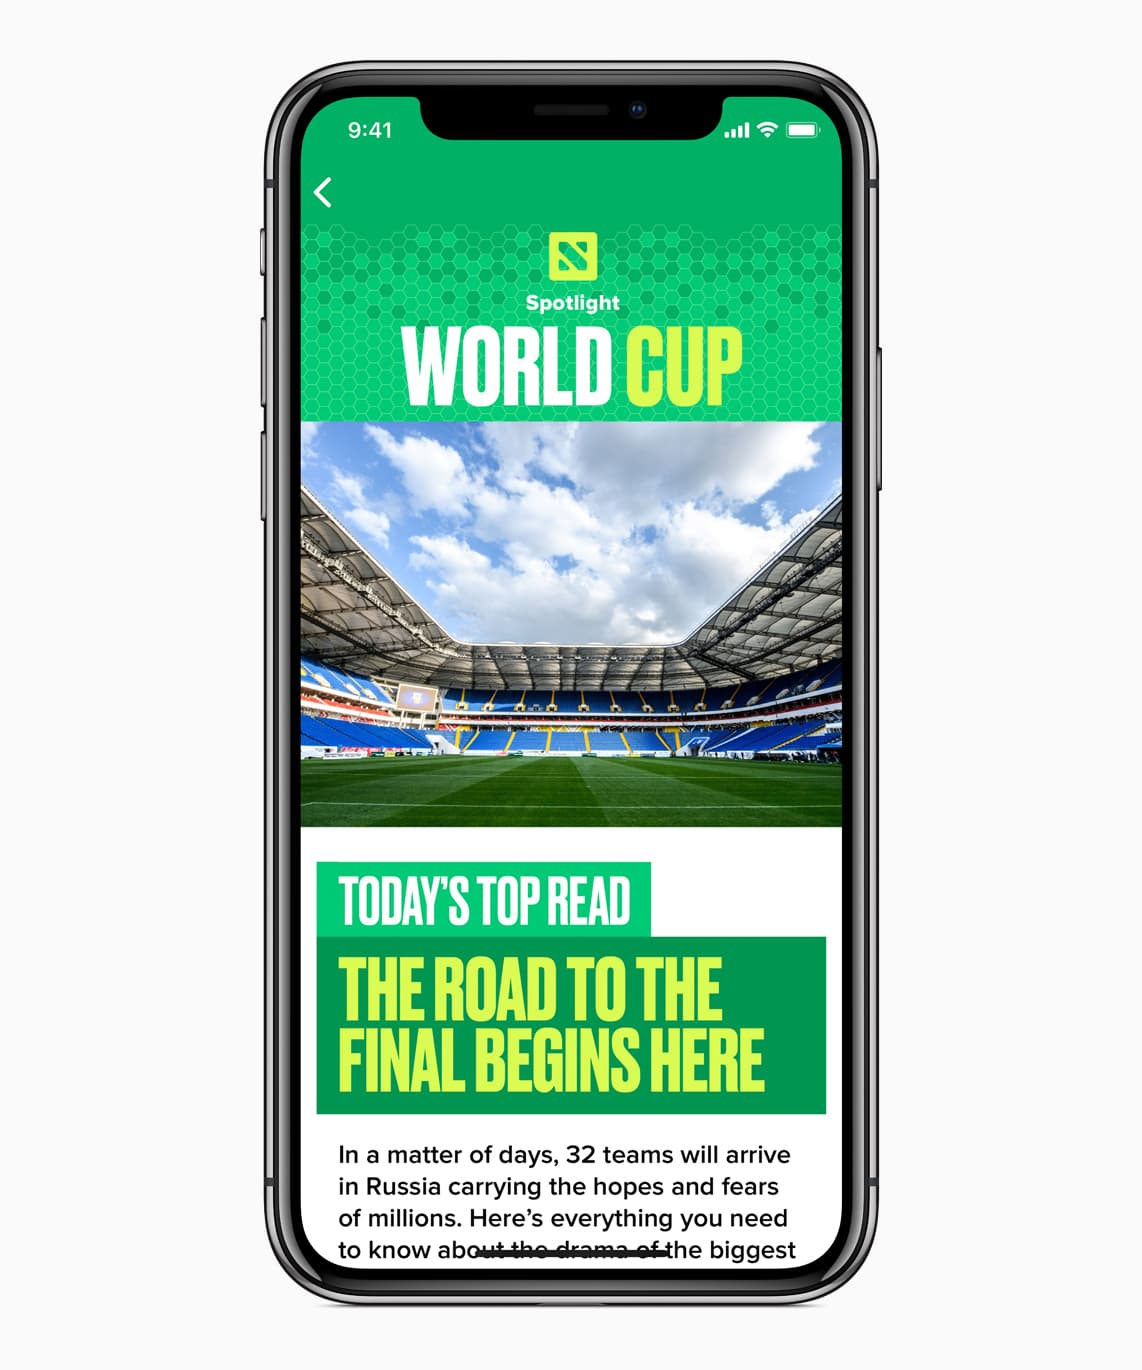 Iphone X World Cup News App Screen 1 06112018